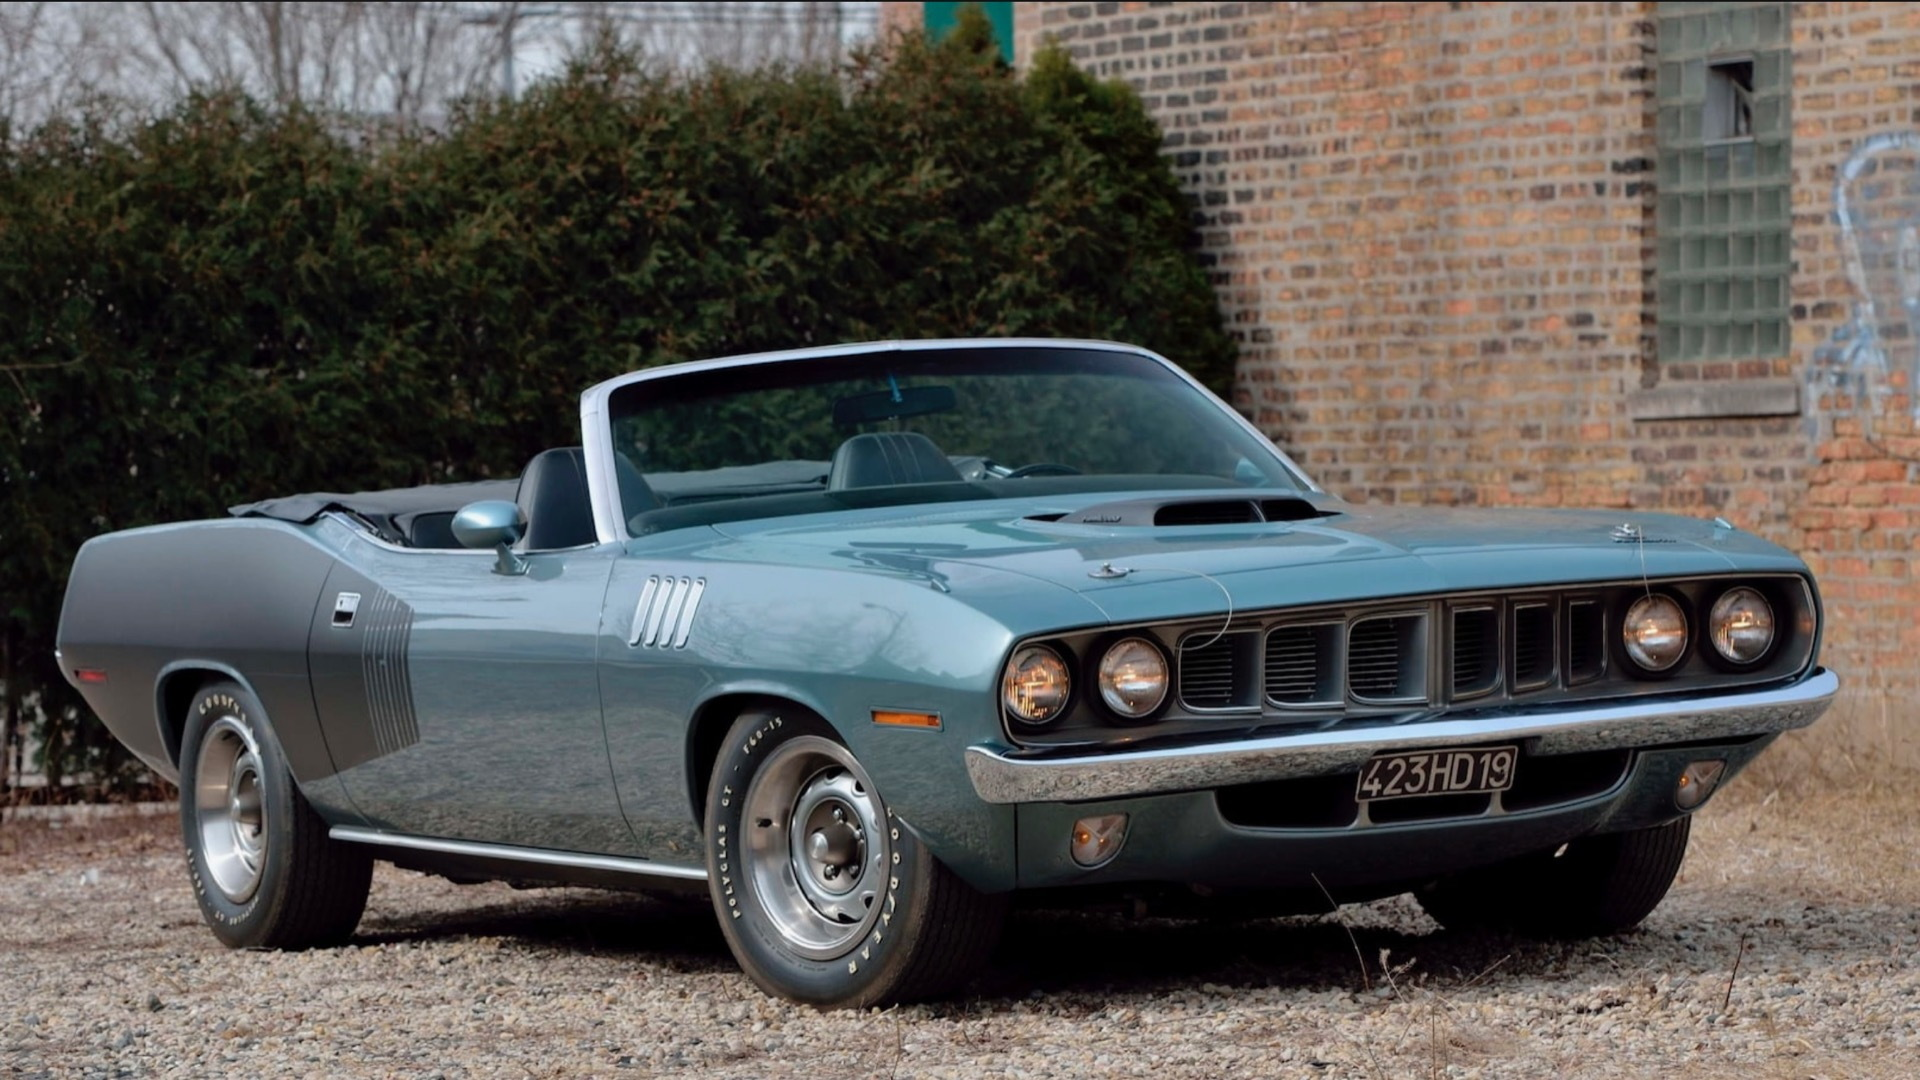 1971 Plymouth Hemi 'Cuda Convertible (Photo by Mecum Auctions)